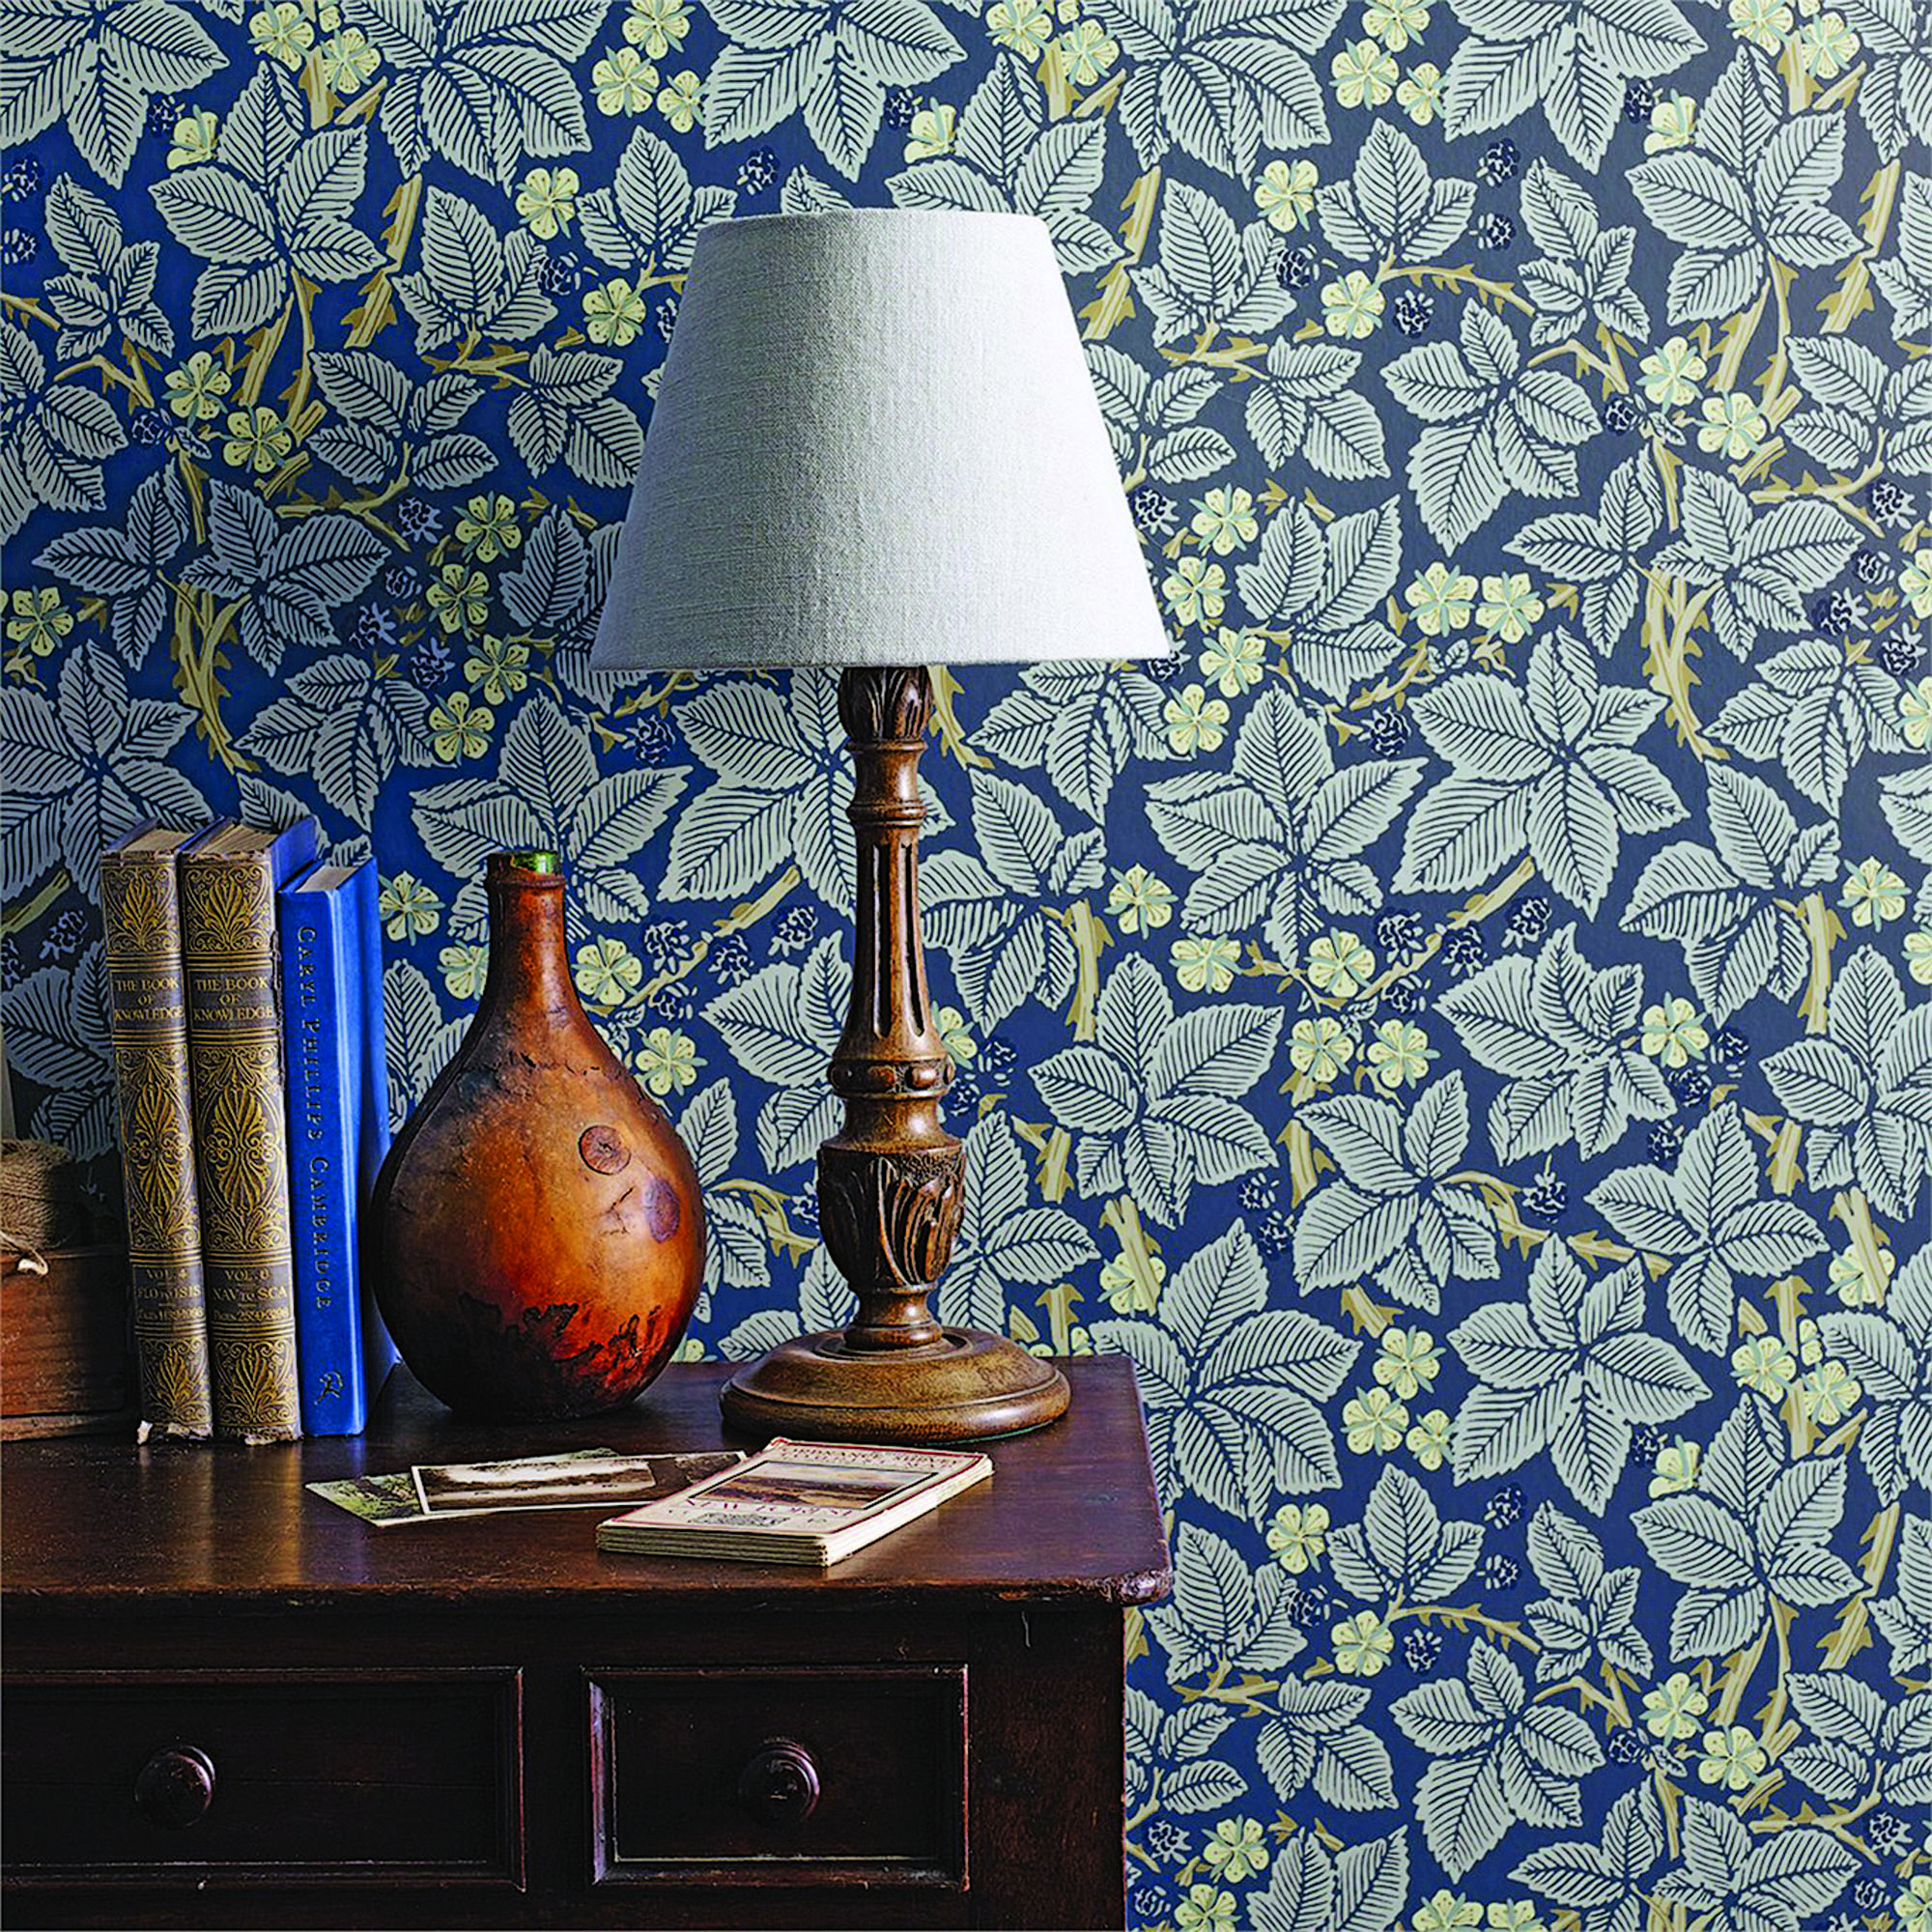 Authentic reproductions of 'Acanthus', 'Bramble', and 'Chrysanthemum' come from today's Morris & Co.